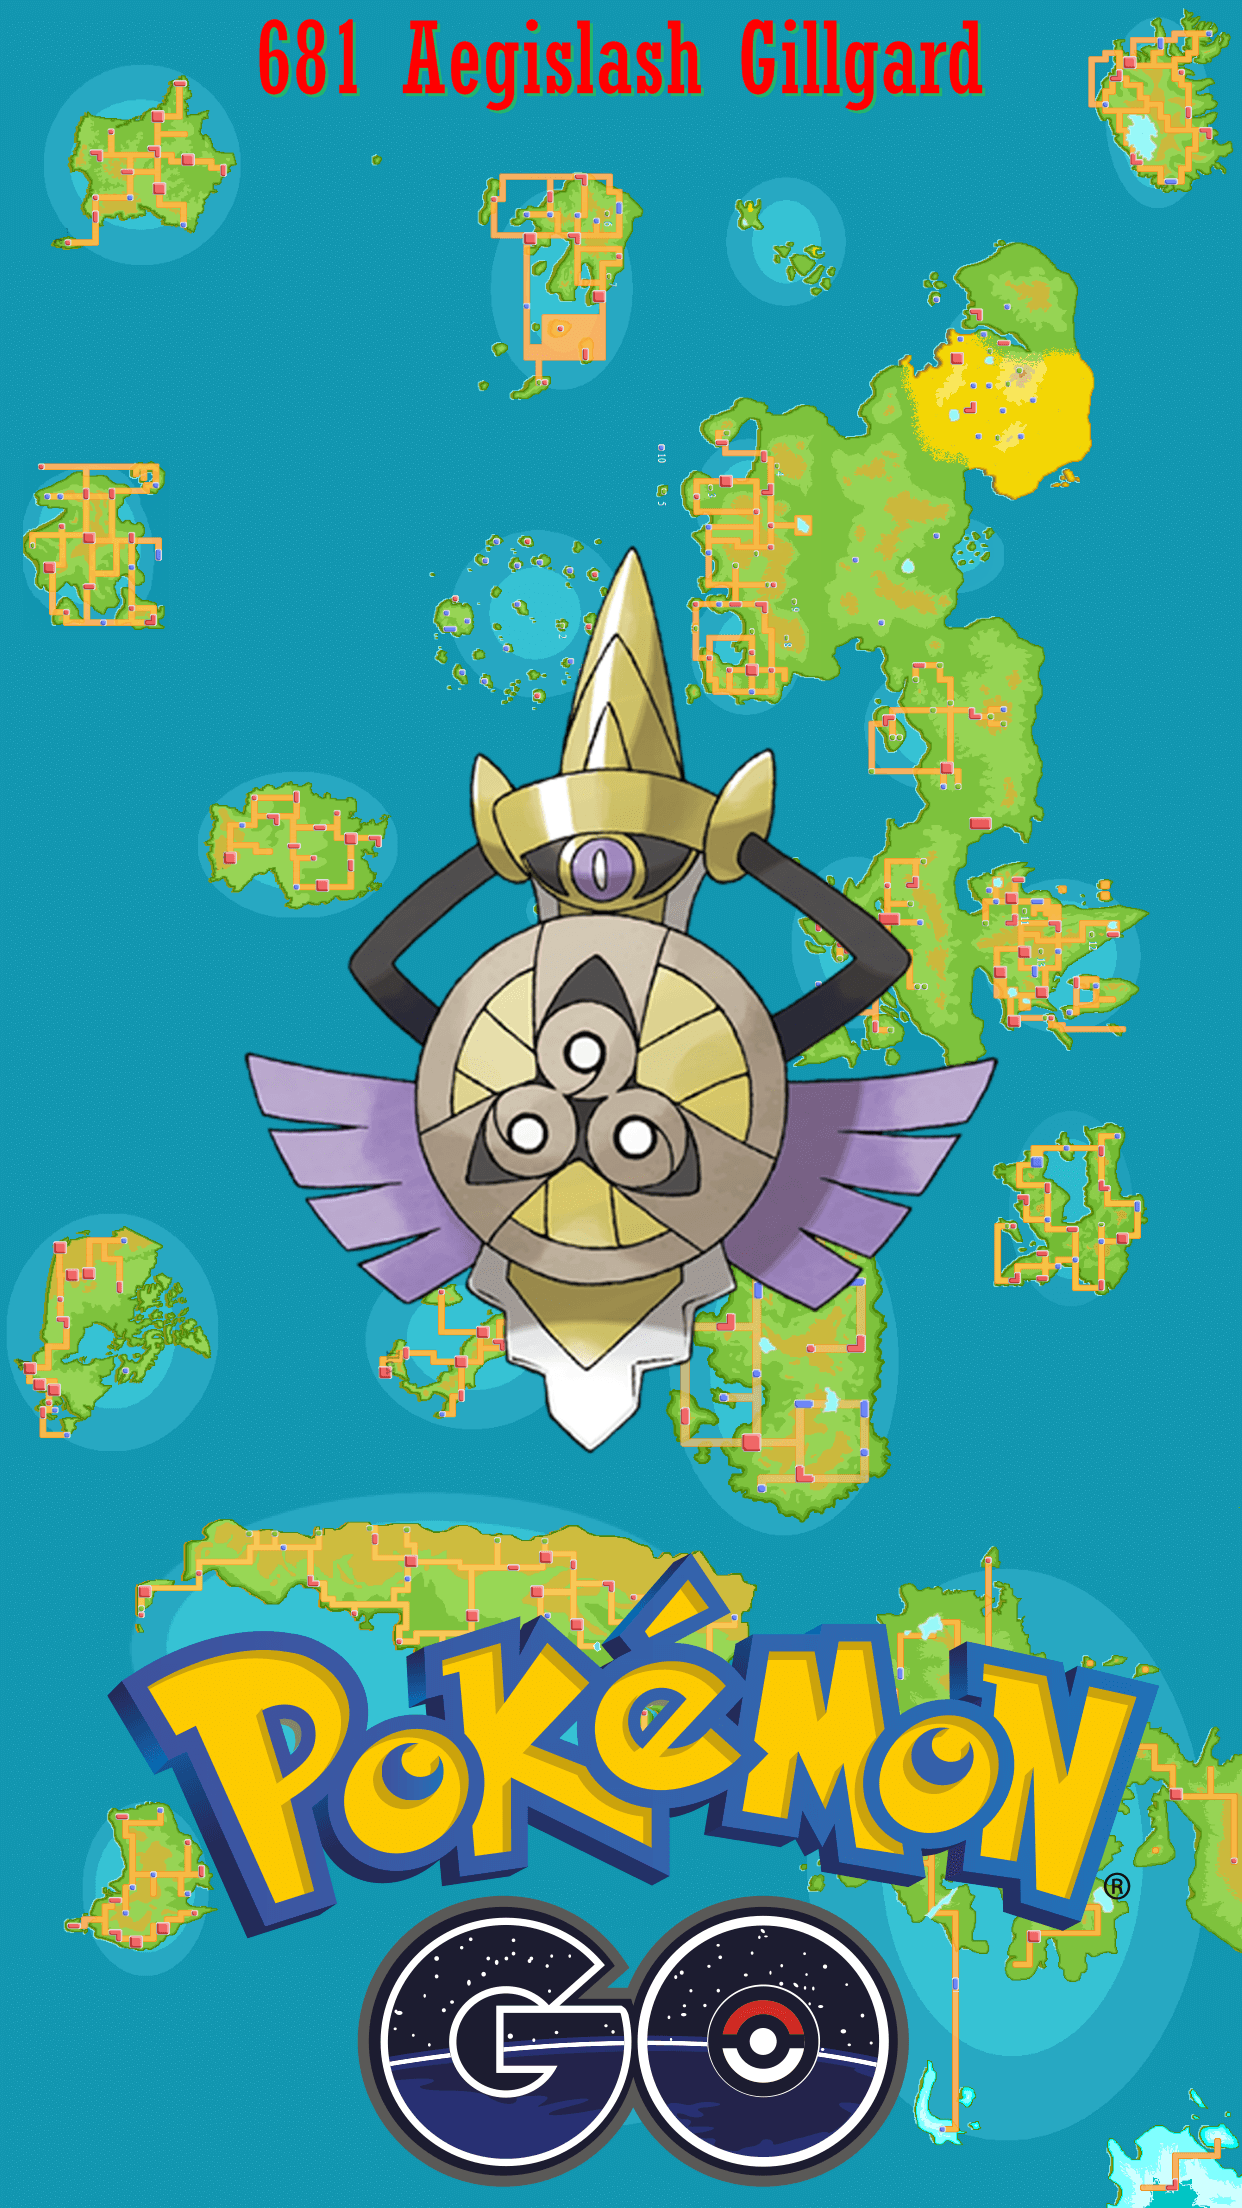 681 Street Map Aegislash Gillgard